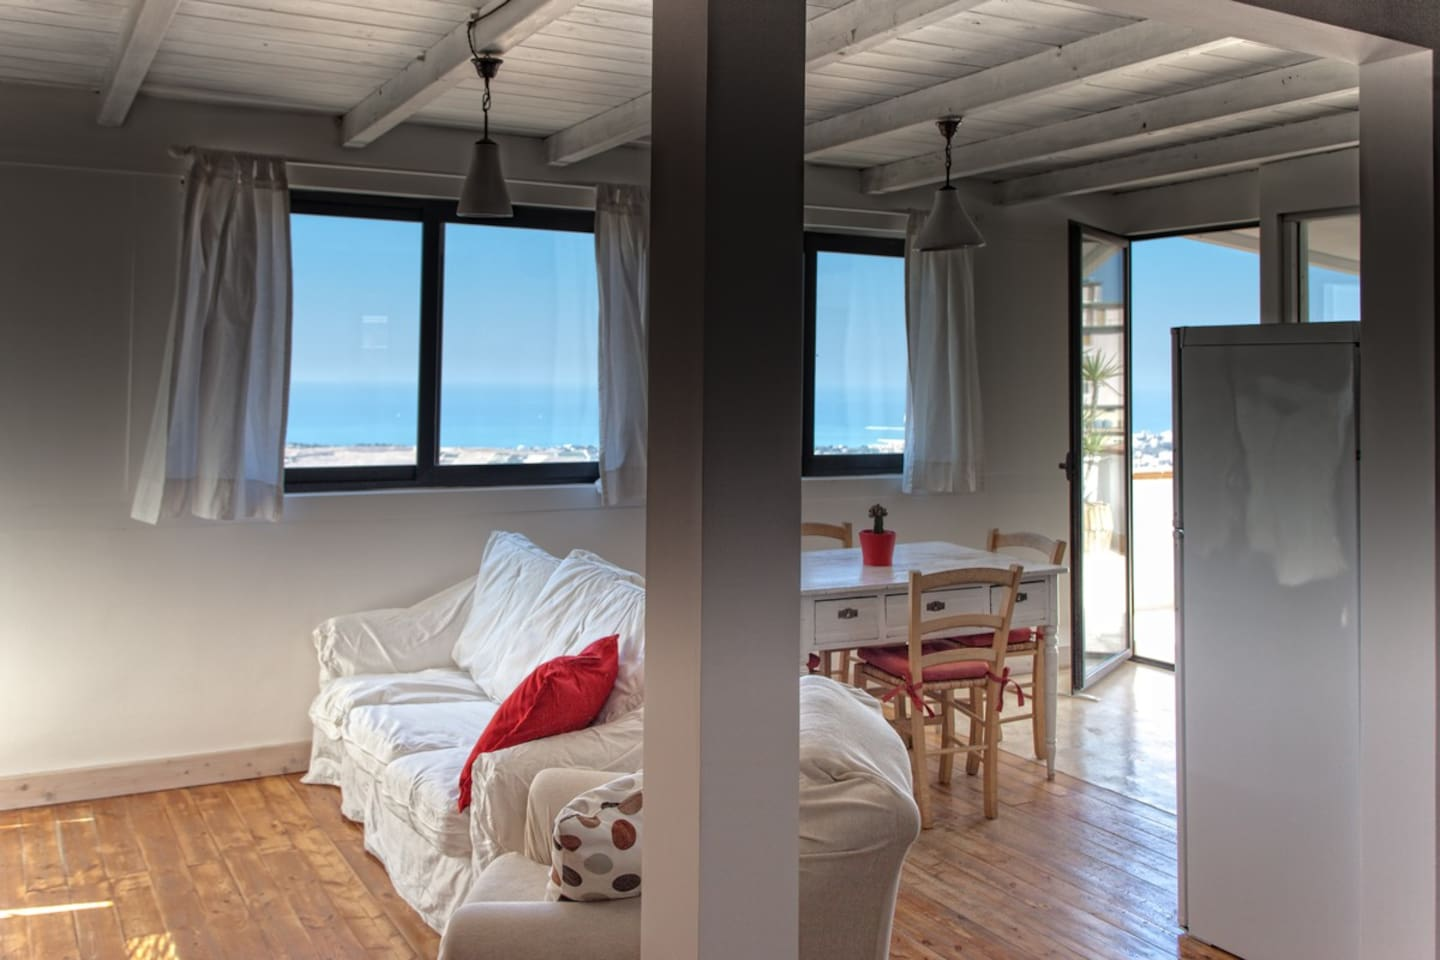 Villas in sicily   airbnb: apartments in sicily & rent a boat sicily